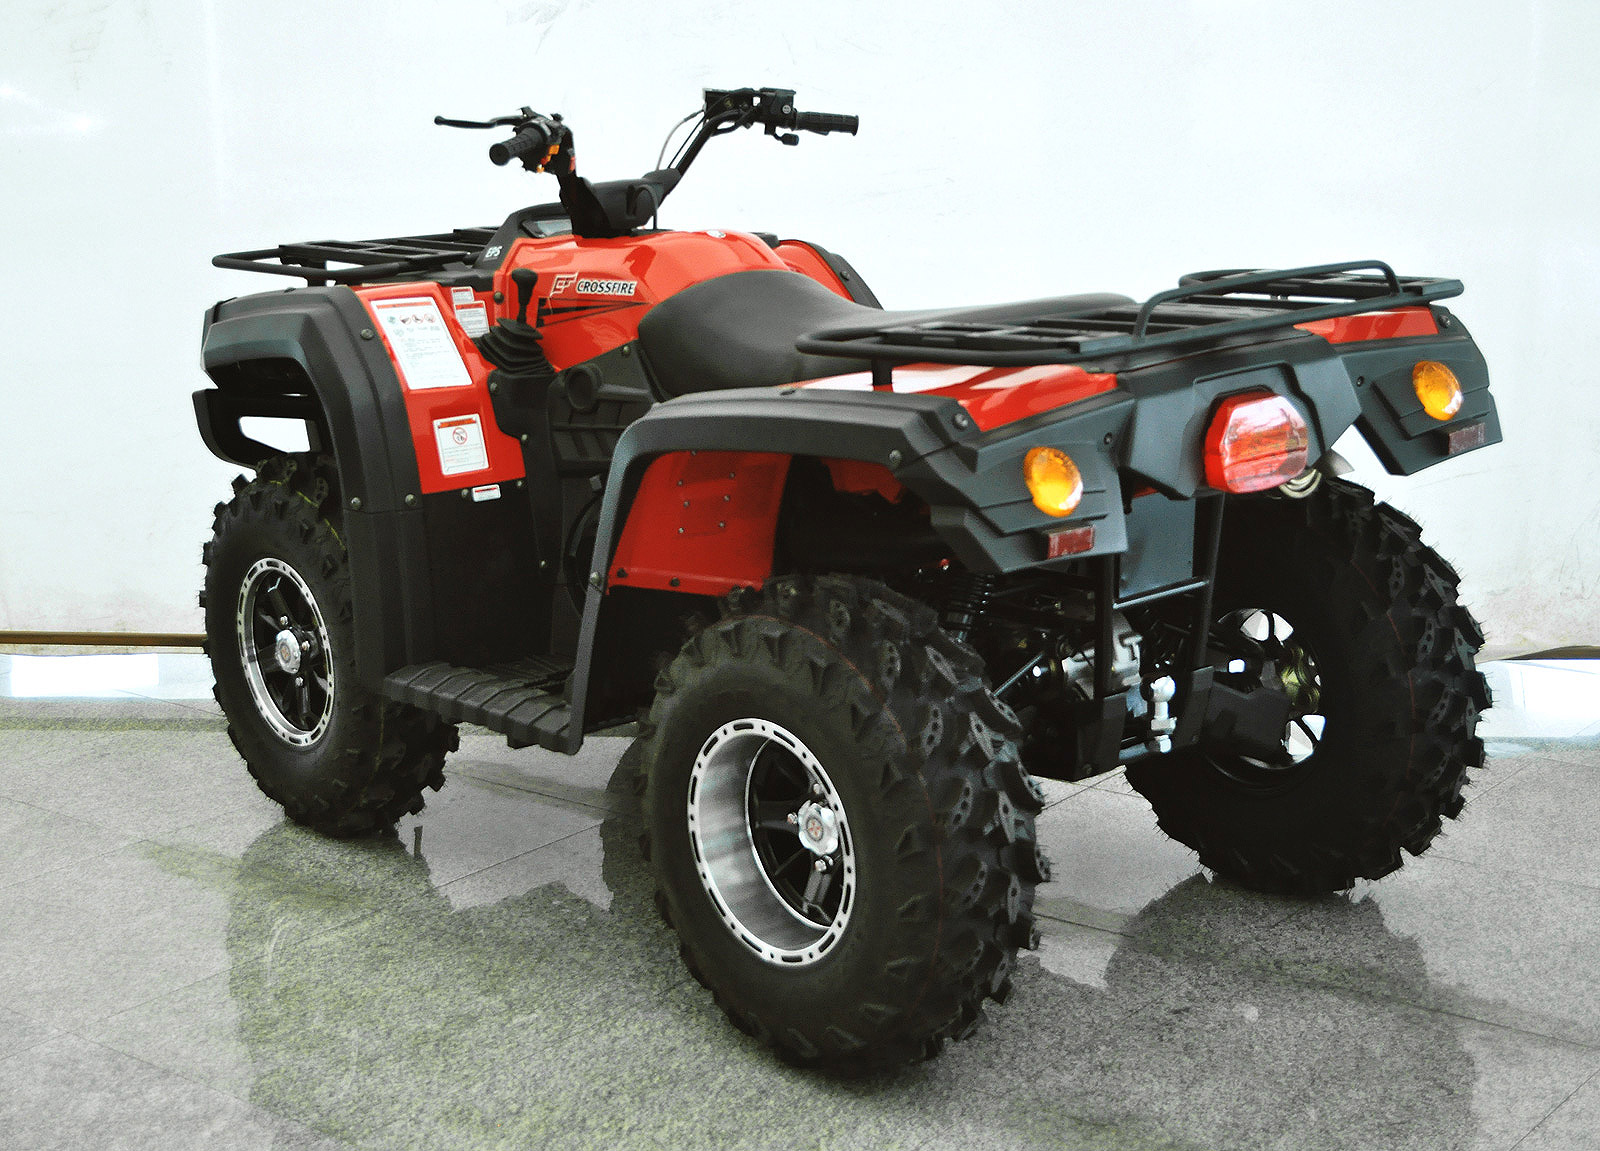 Taotao ATVs - For the Young Adult in Your Children